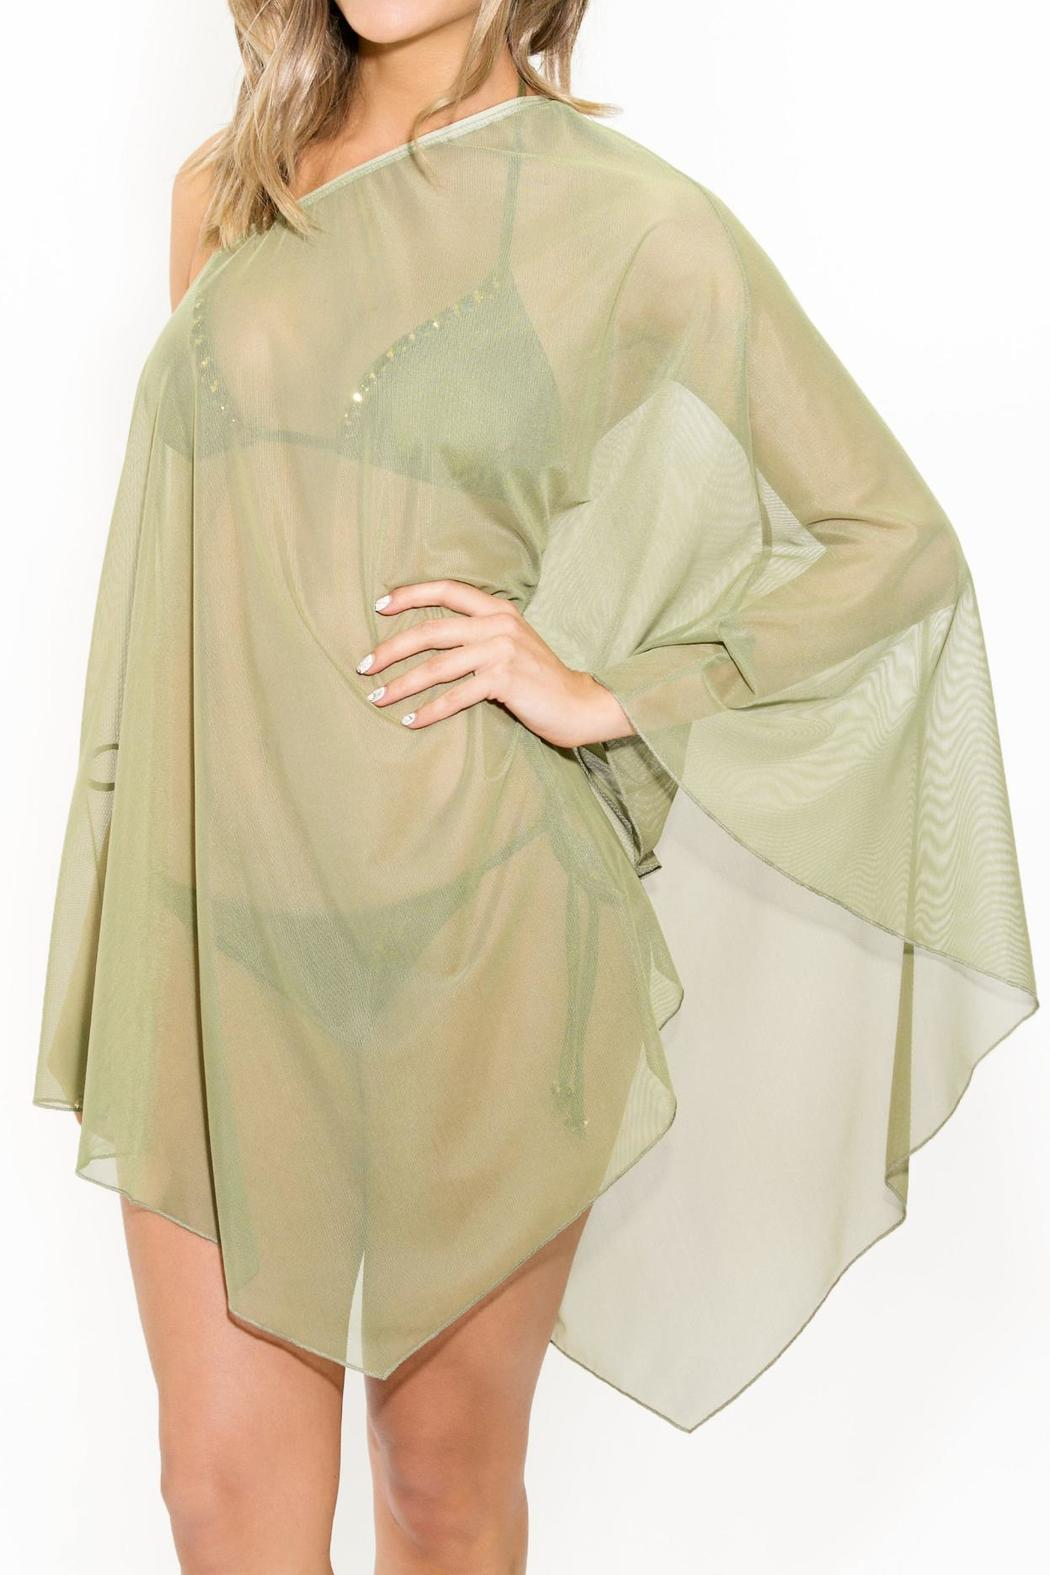 BeachCandy 3 Way Swim Coverup - Front Cropped Image